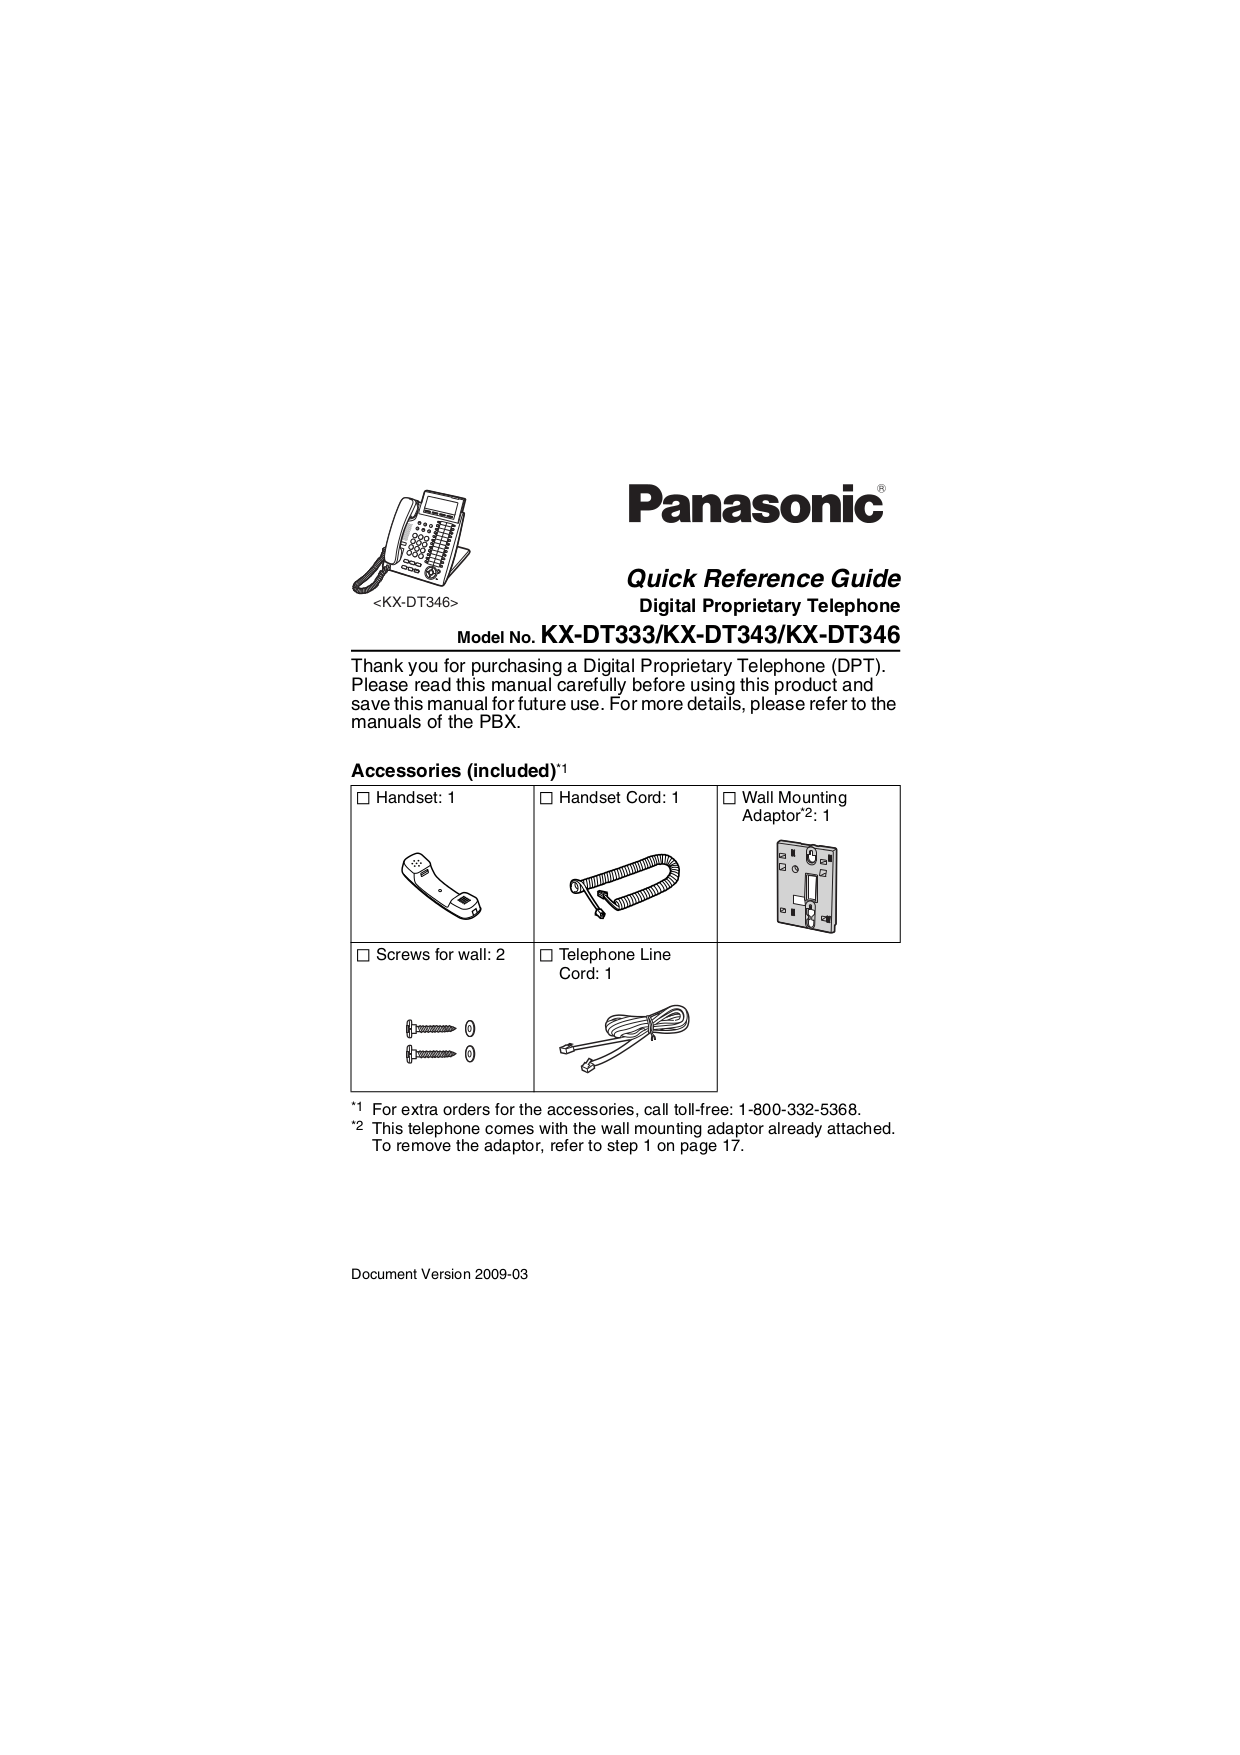 Download free pdf for Panasonic KX-DT346 Telephone manual